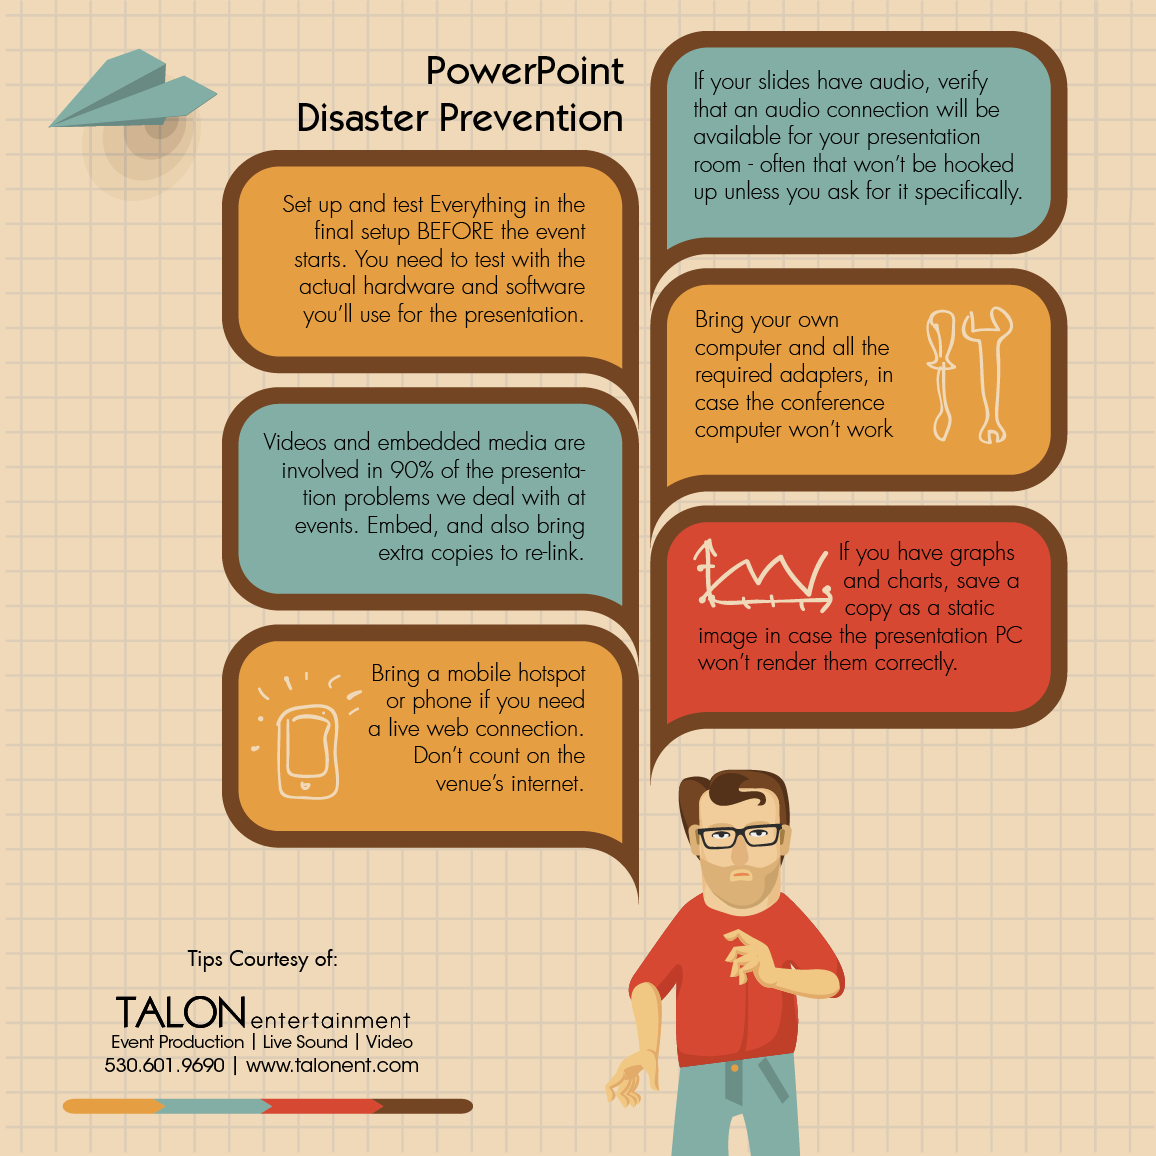 Our top tips for avoiding powerpoint disaster. Embedded media is the root of about 90% of the problems we encounter in the field, so make sure you bring backup copies of any embedded files. And Test Test Test, before you leave, and before you present.